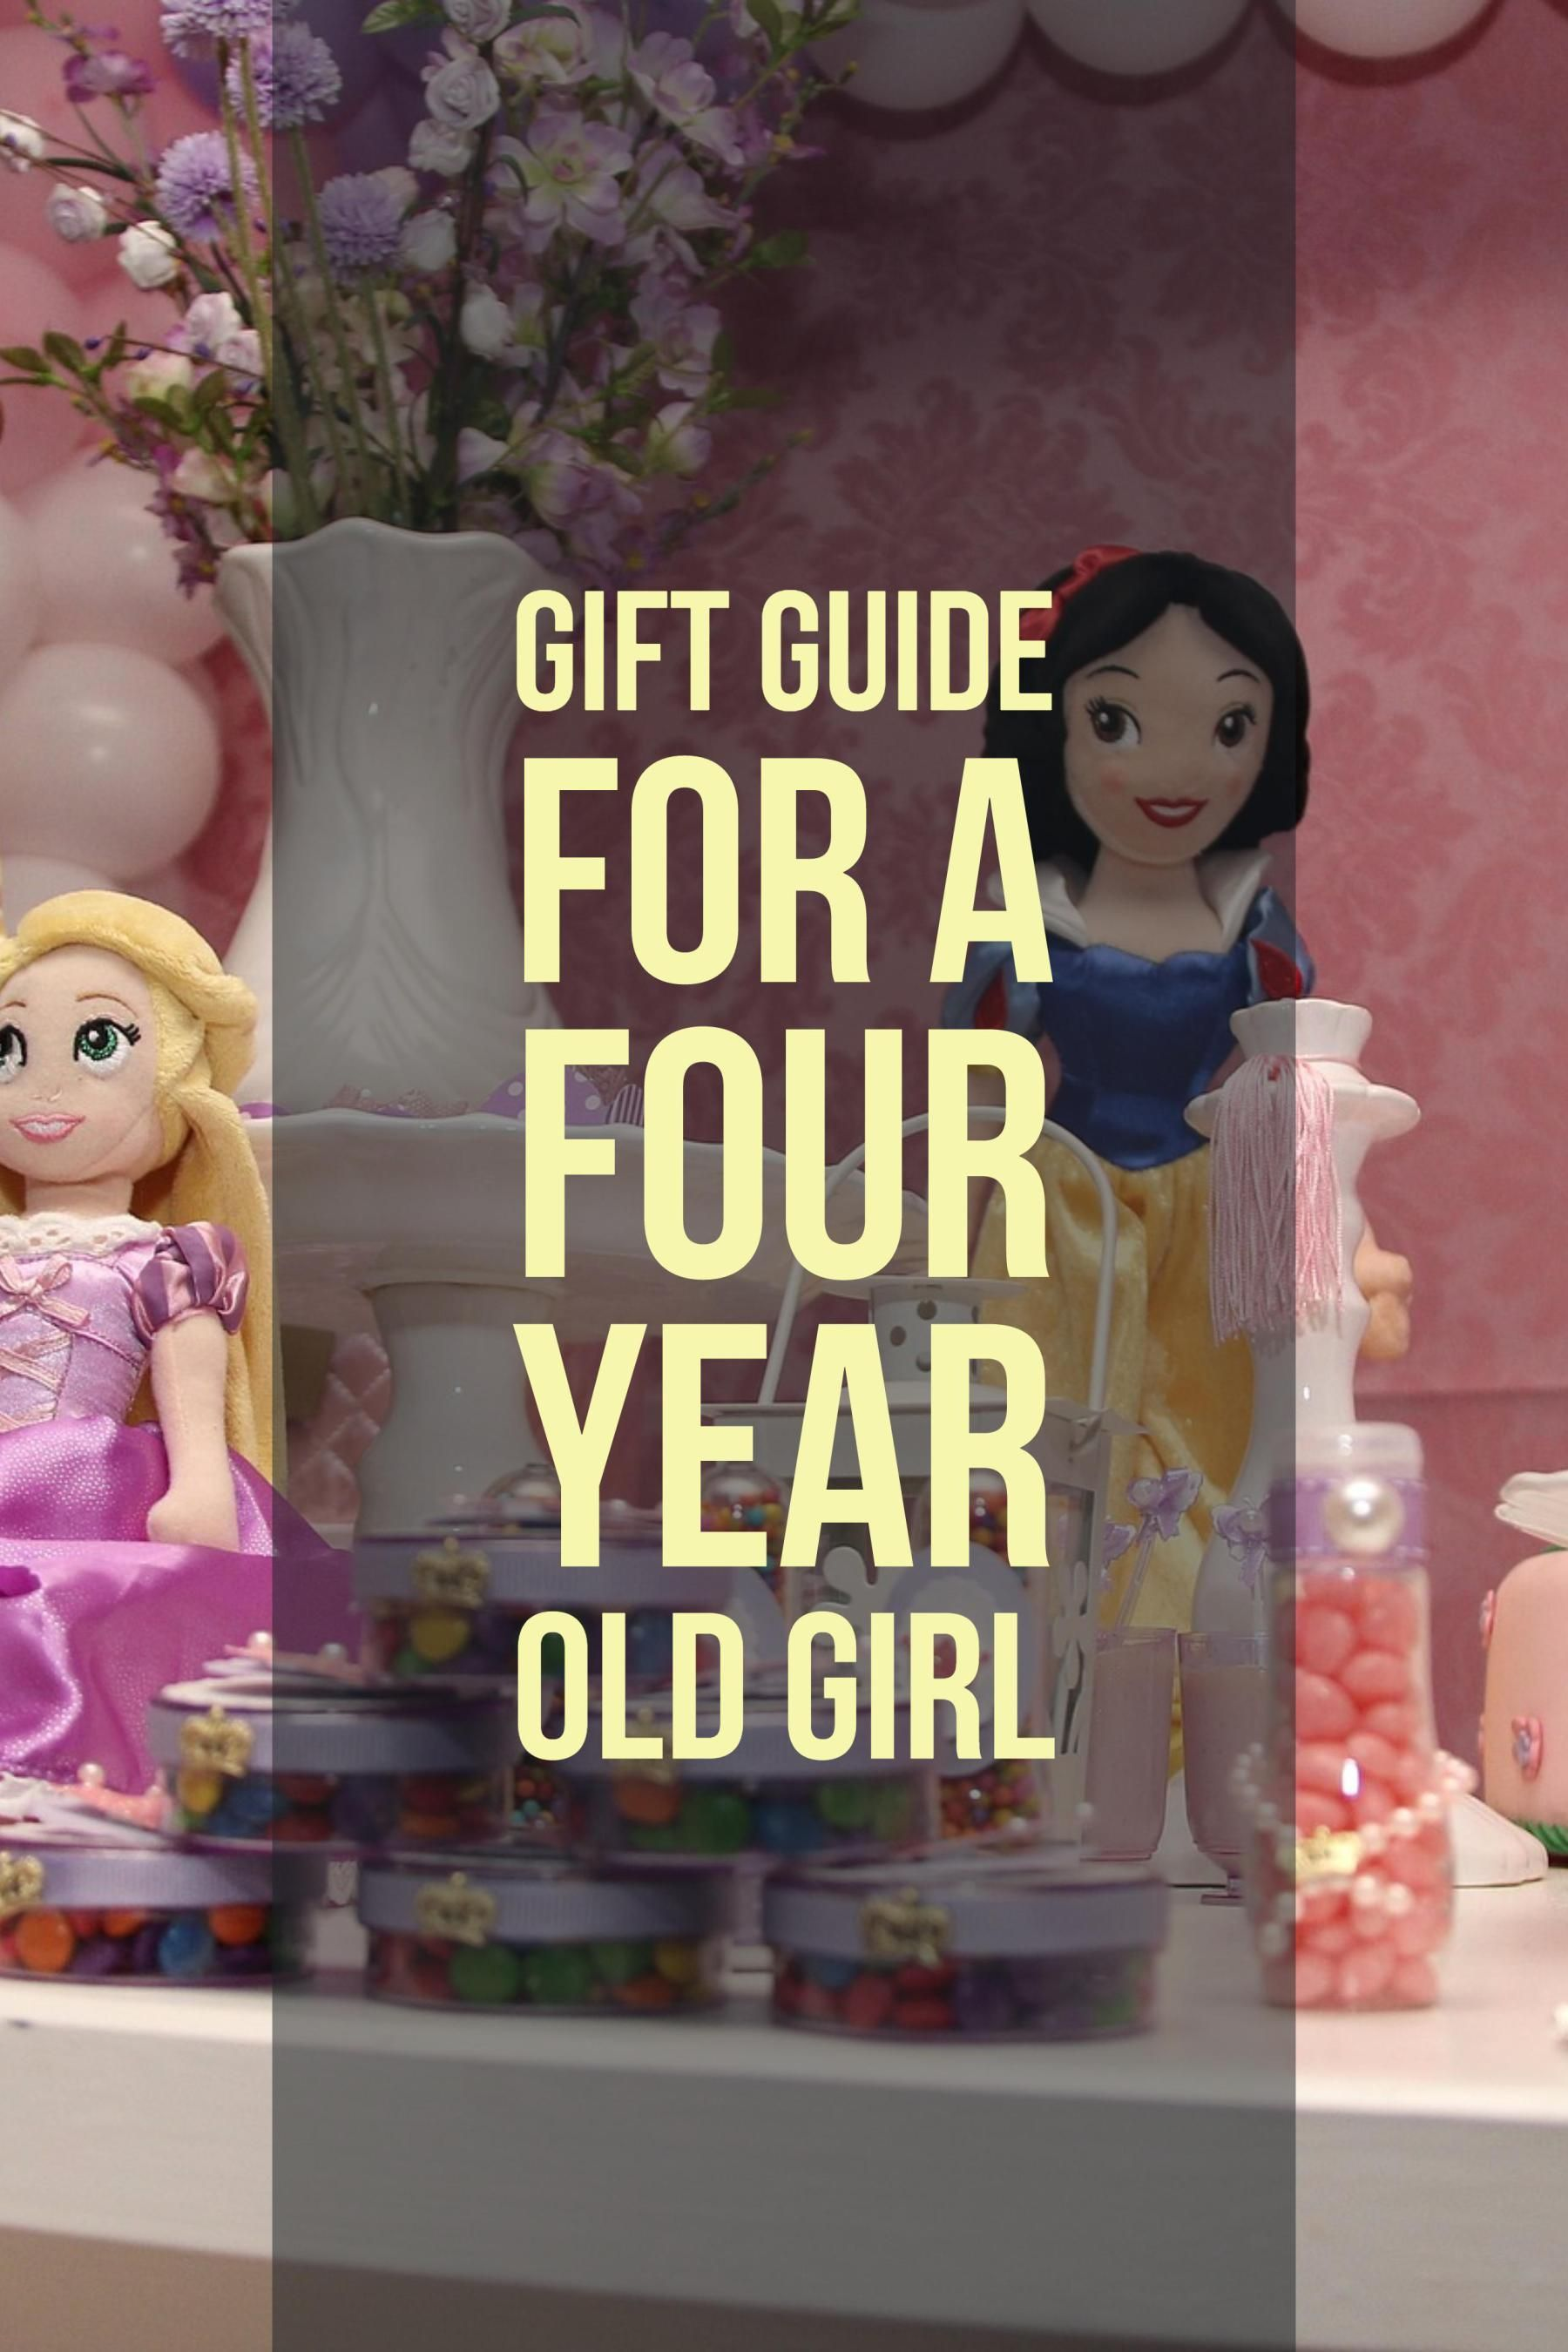 Best Birthday Gifts For A 4 Year Old Girl Who Has Everything